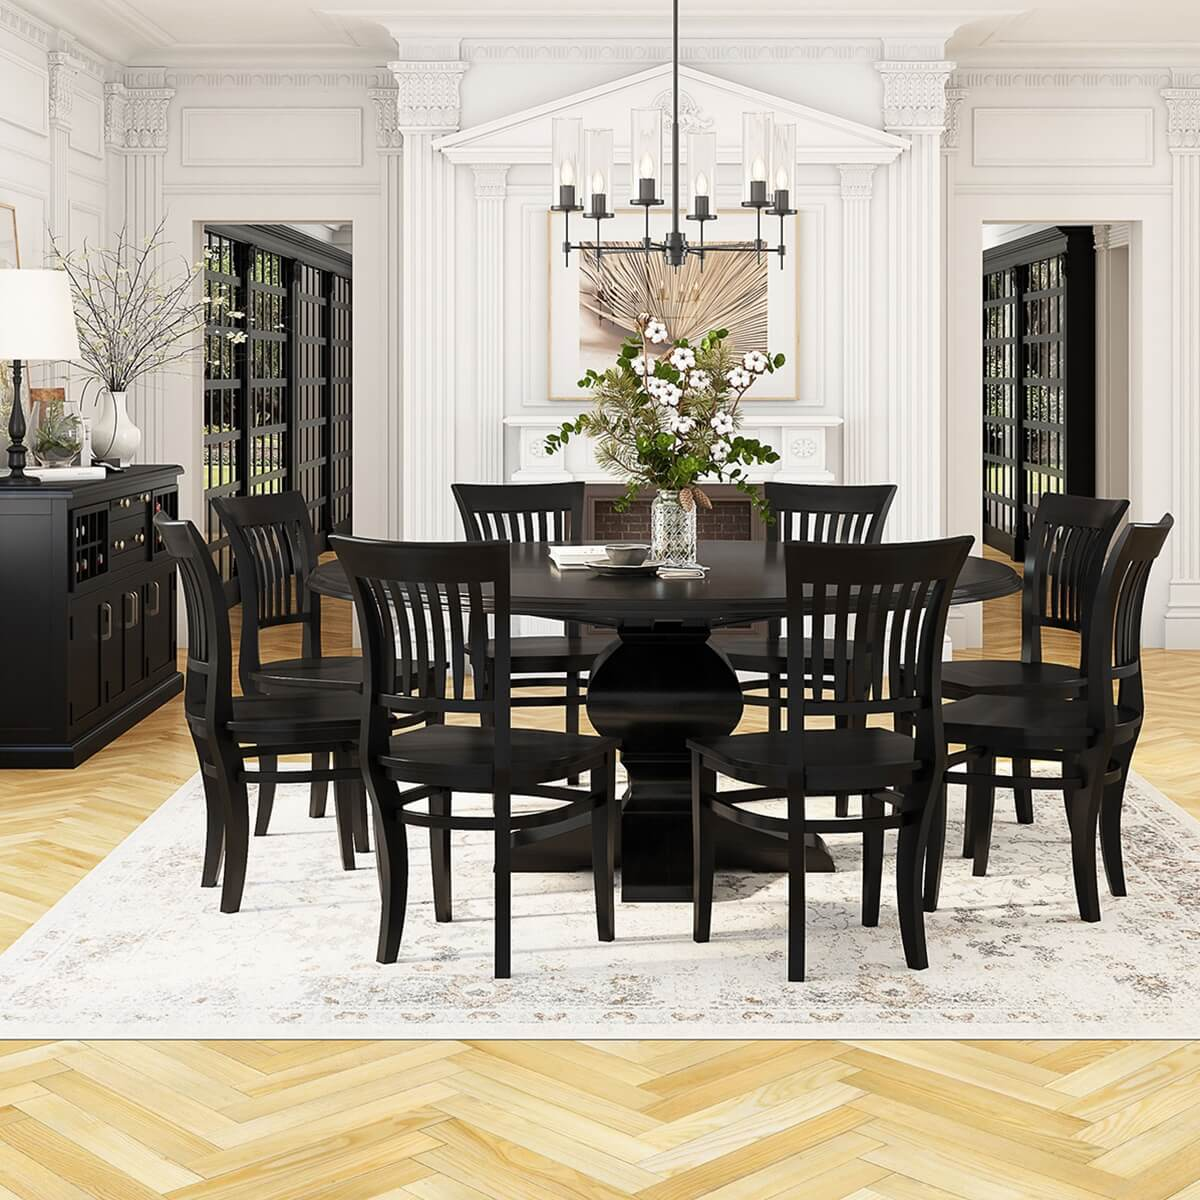 Sierra Nevada Solid Wood Pedestal 13 Piece Round Dining Room Set